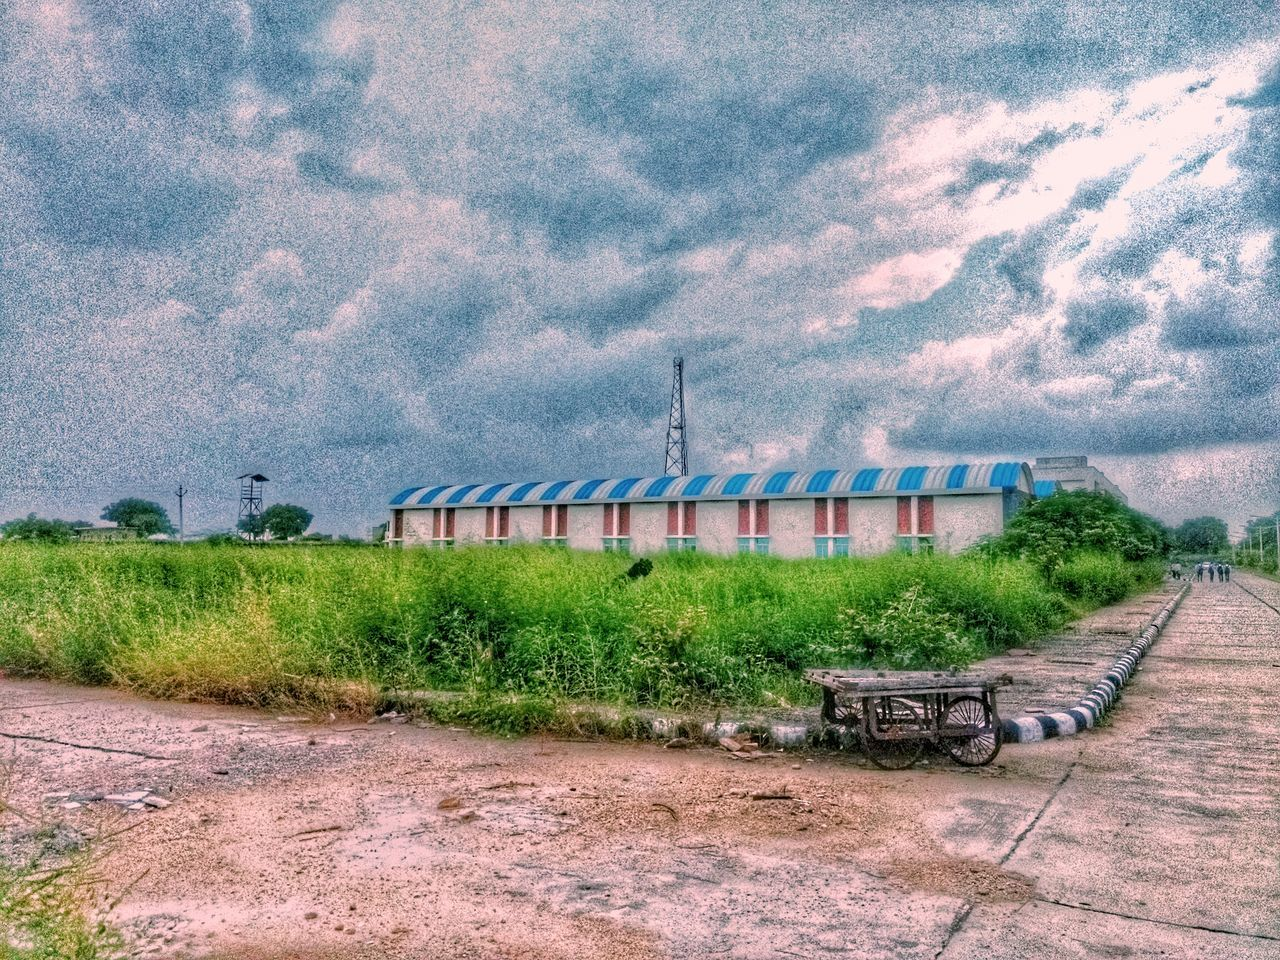 Cloud - Sky Outdoors Sky Blue Workshop Noisy_Pic Mobilephotography Empty Road Absence Building Exterior Day Sky Blue Solitude Cloud - Sky Outdoors Tranquility Cloudy Remote Tranquil Scene No People Countryside Rural Scene Surface Level